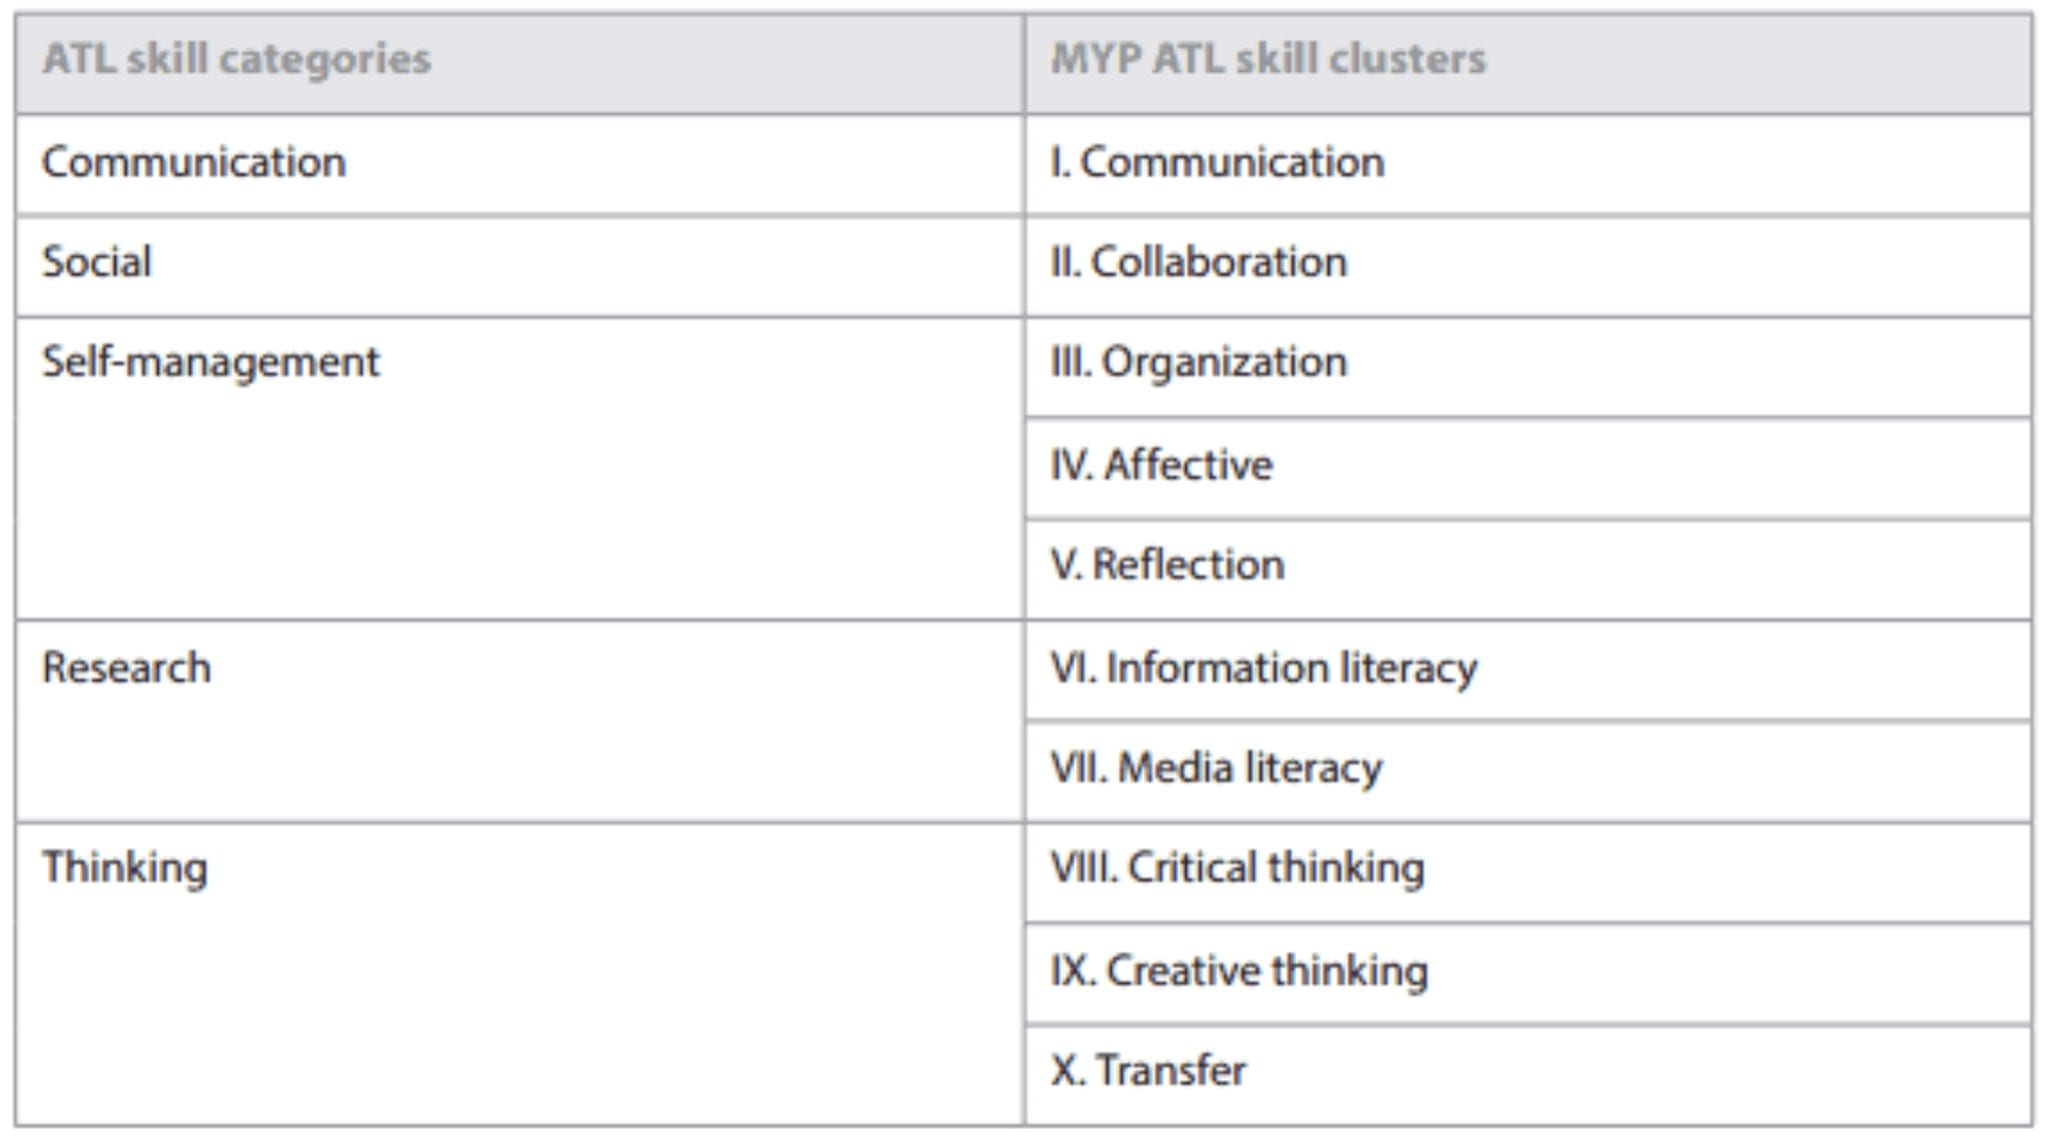 ATL Skill Categories and Clusters